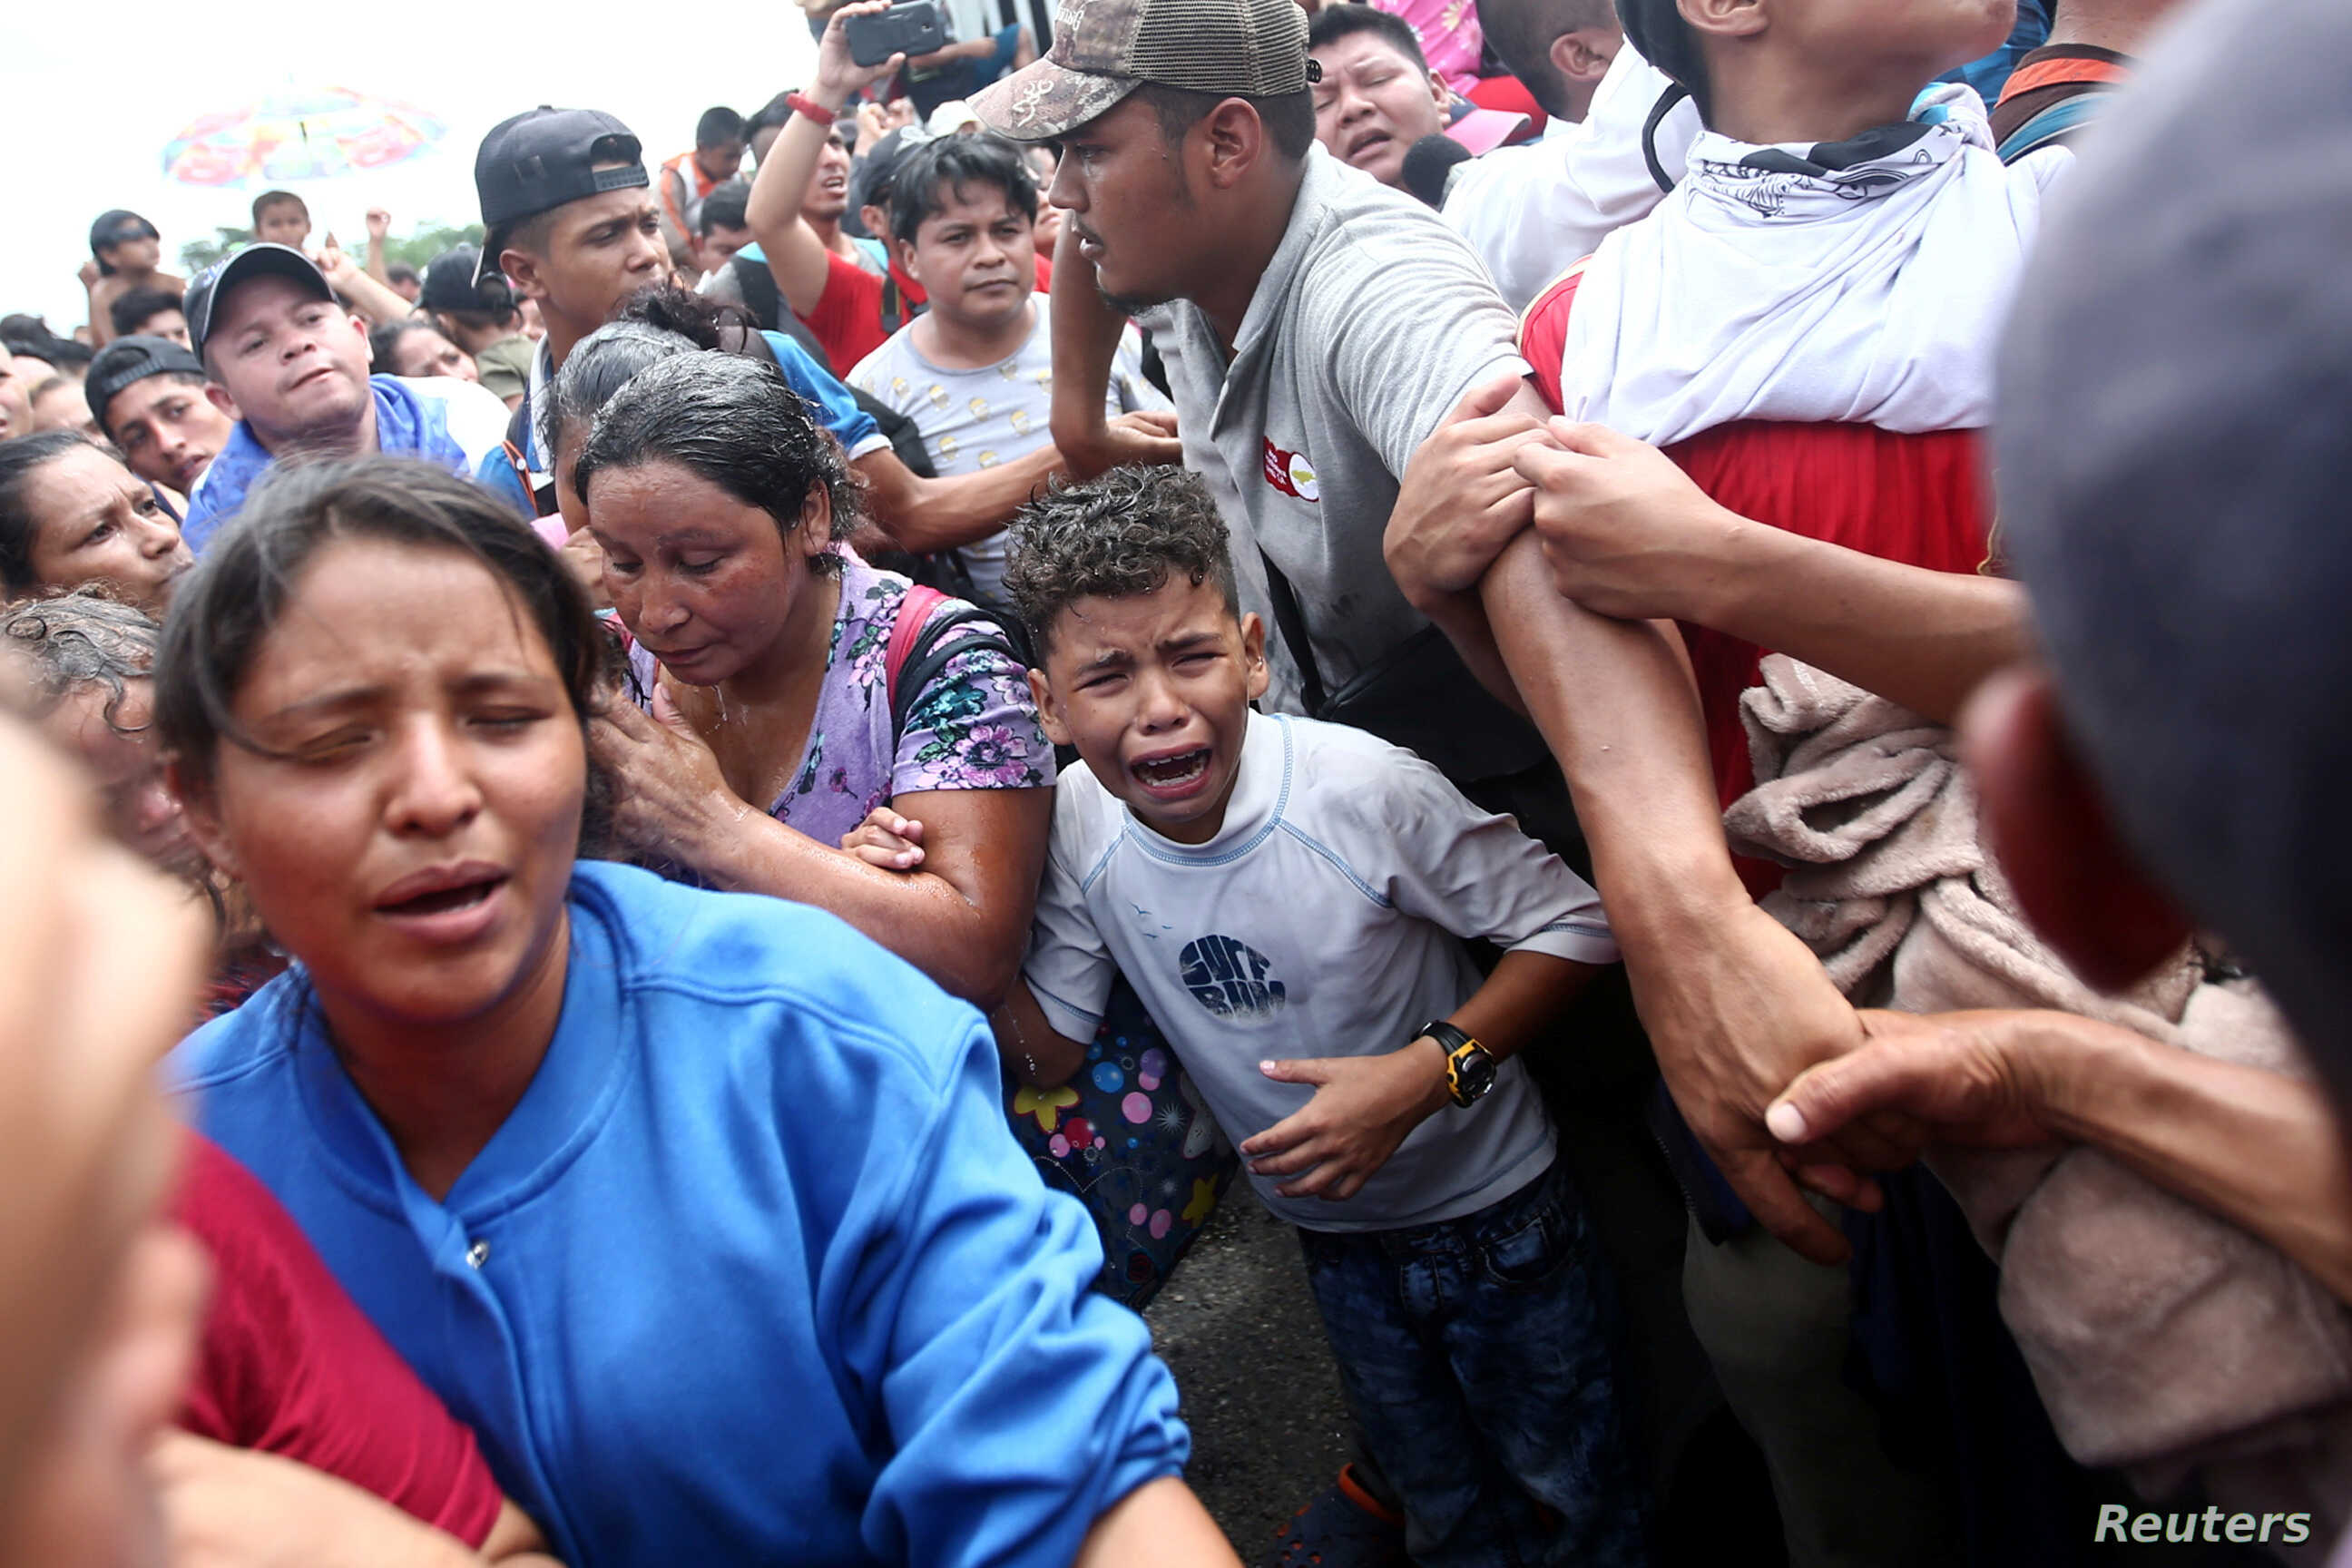 A Honduran migrant, part of a caravan trying to reach the U.S., cries after others stormed a border checkpoint in Guatemala, in Ciudad Hidalgo, Mexico, Oct. 19, 2018.